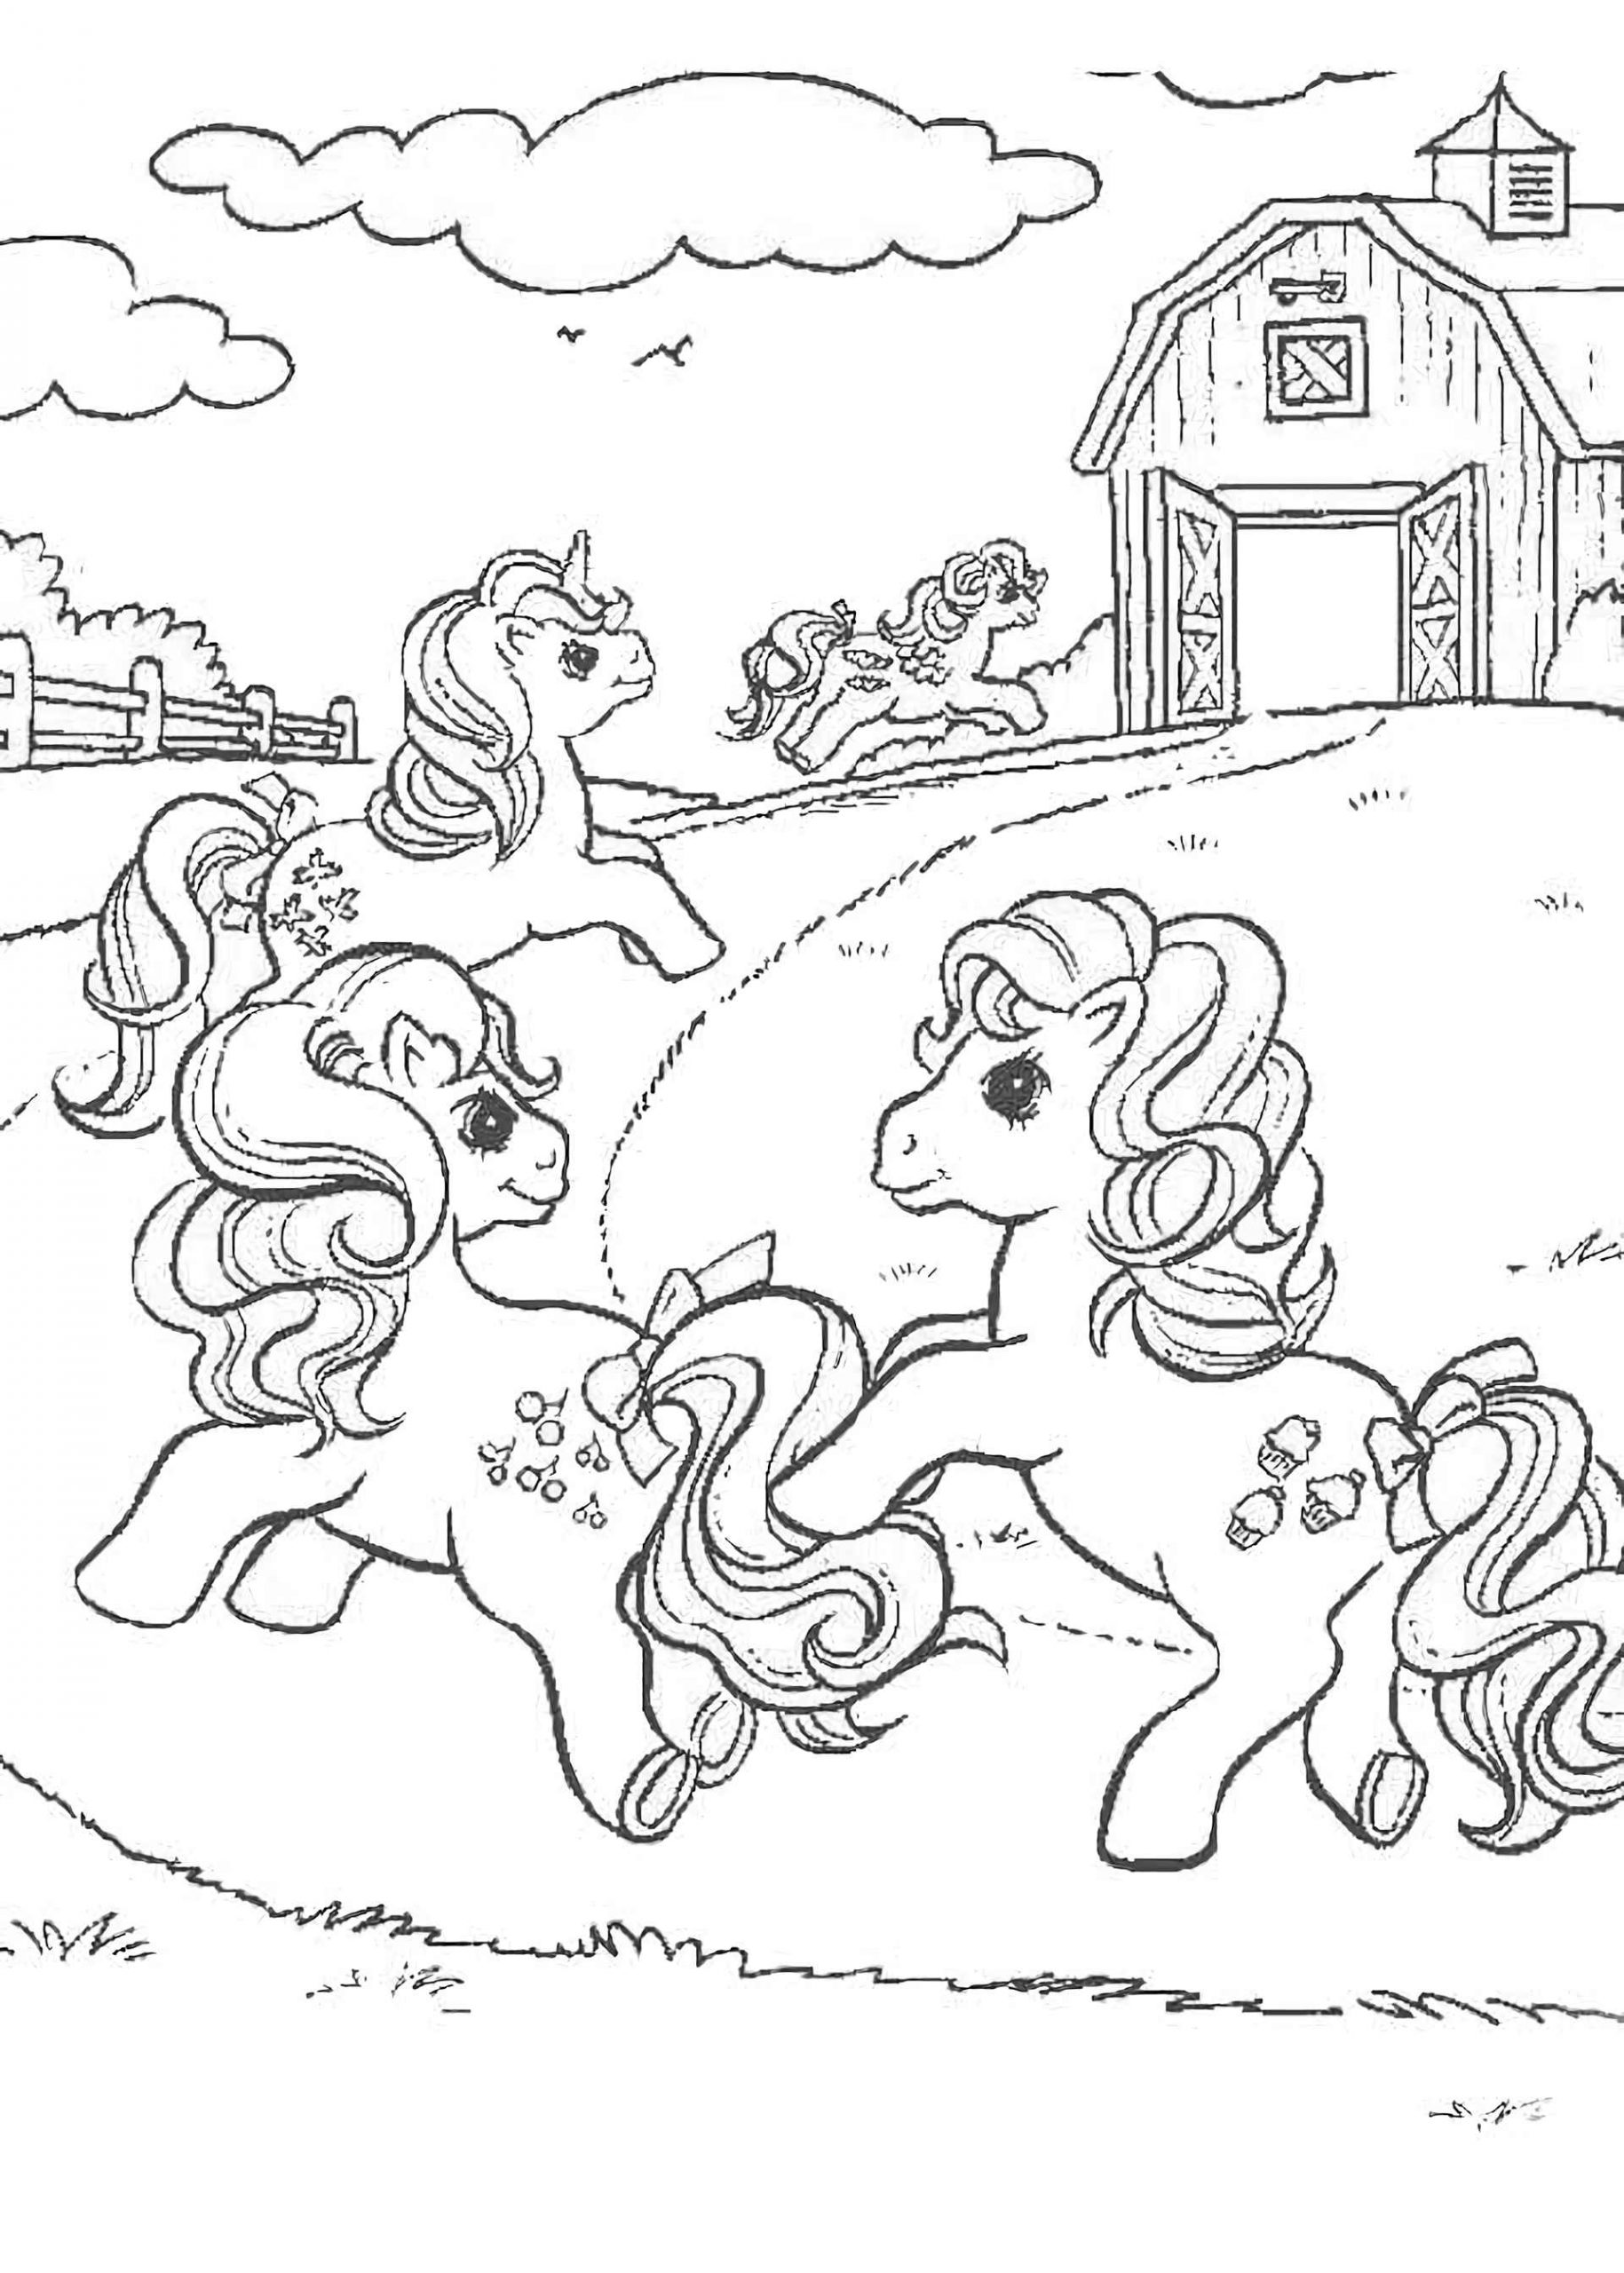 Coloring Sheet Pinkie Pie, Fluttershy And Other Ponies Run Home After A Picnic